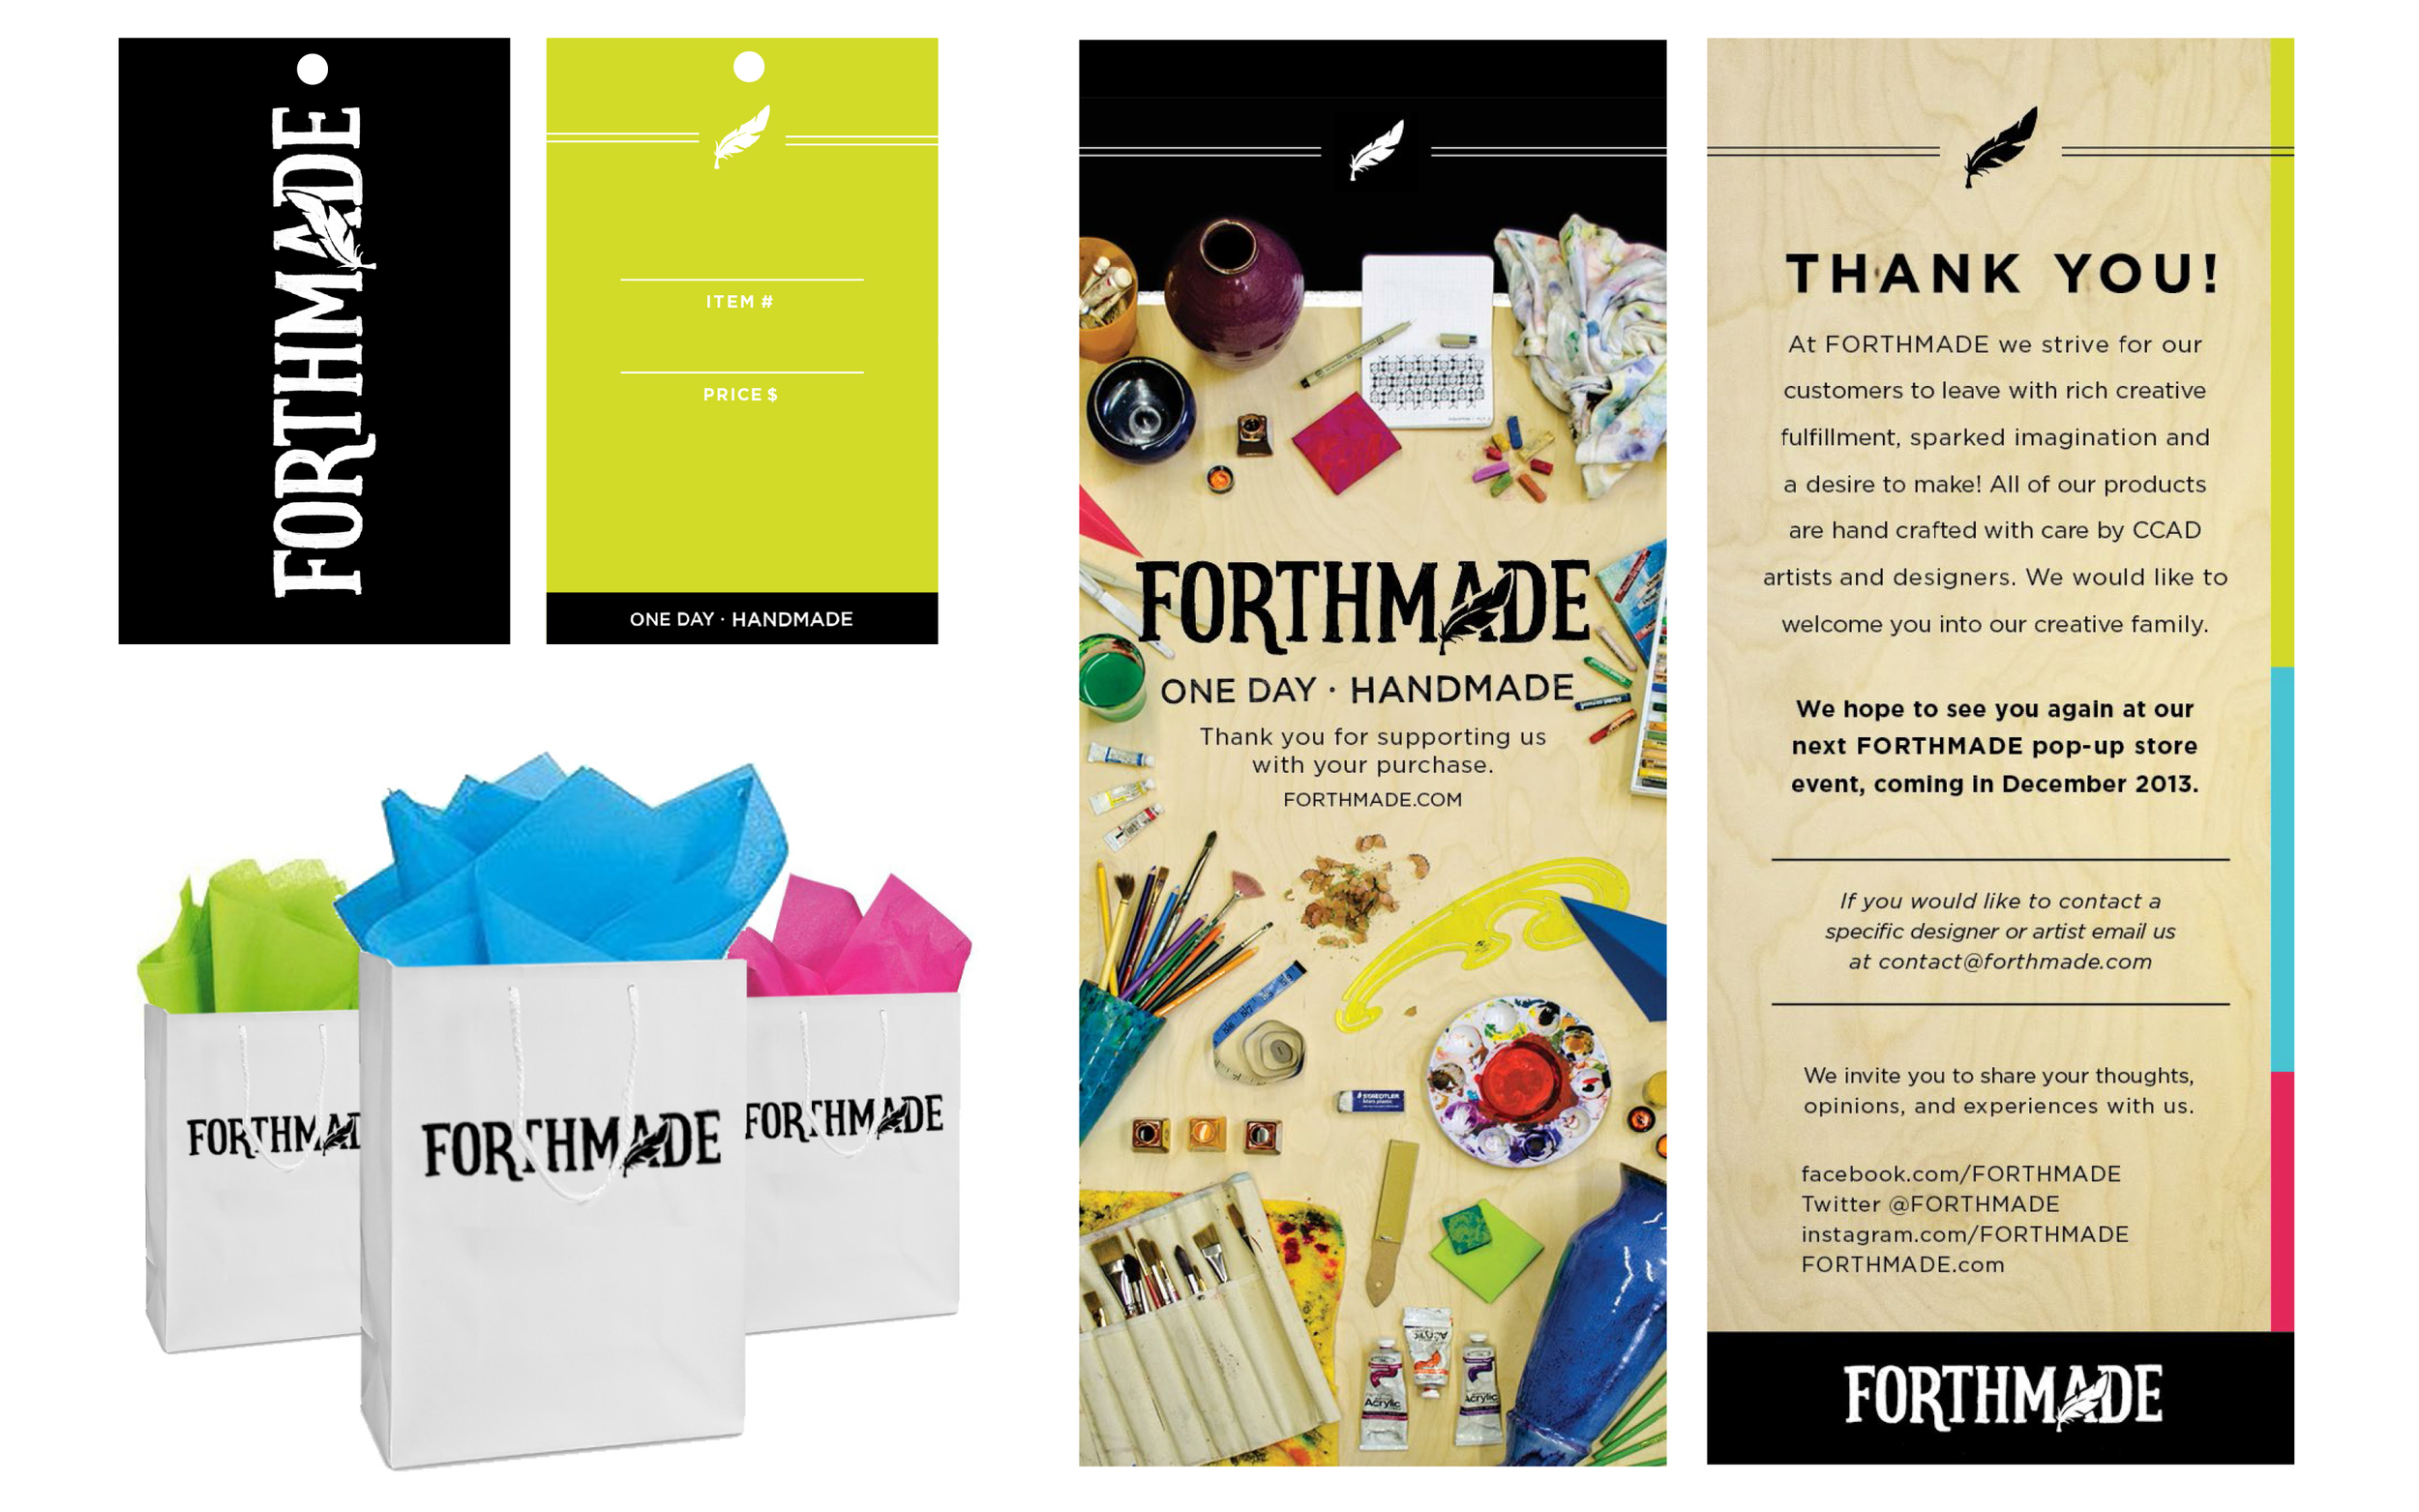 Our relationship with our customers didn't end after the purchase - flyers were inserted into each branded bag encouraging them to share their thoughts on the experience, stay in touch, and be ready for the next CCAD pop-up shop event.